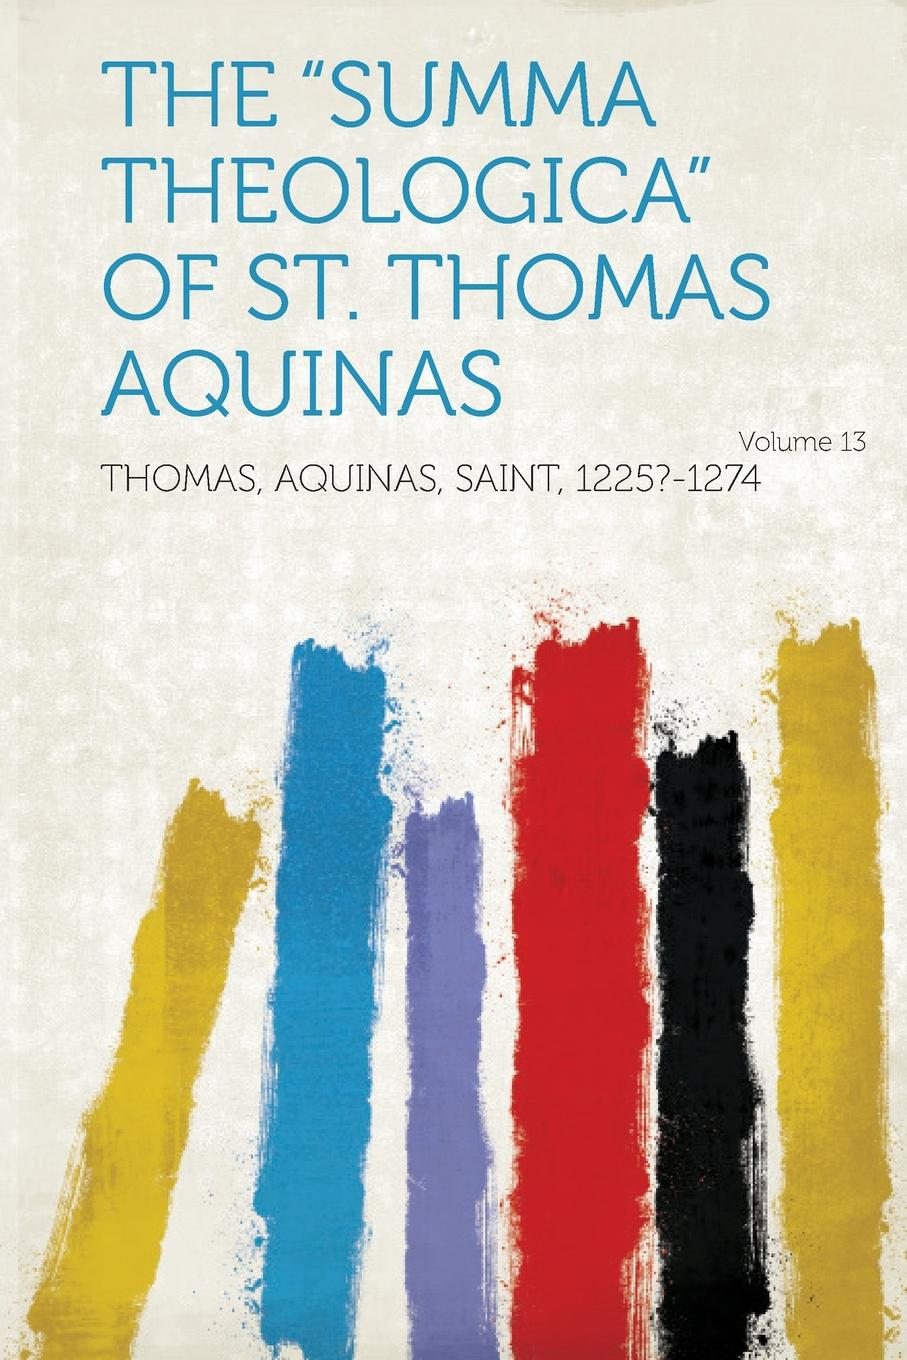 Thomas Aquinas The Summa Theologica of St. Thomas Aquinas Volume 13 aquinas saint thomas aquinas ethicus or the moral teaching of st thomas a translation of the principle portions of the second part of the summa theologica with notes